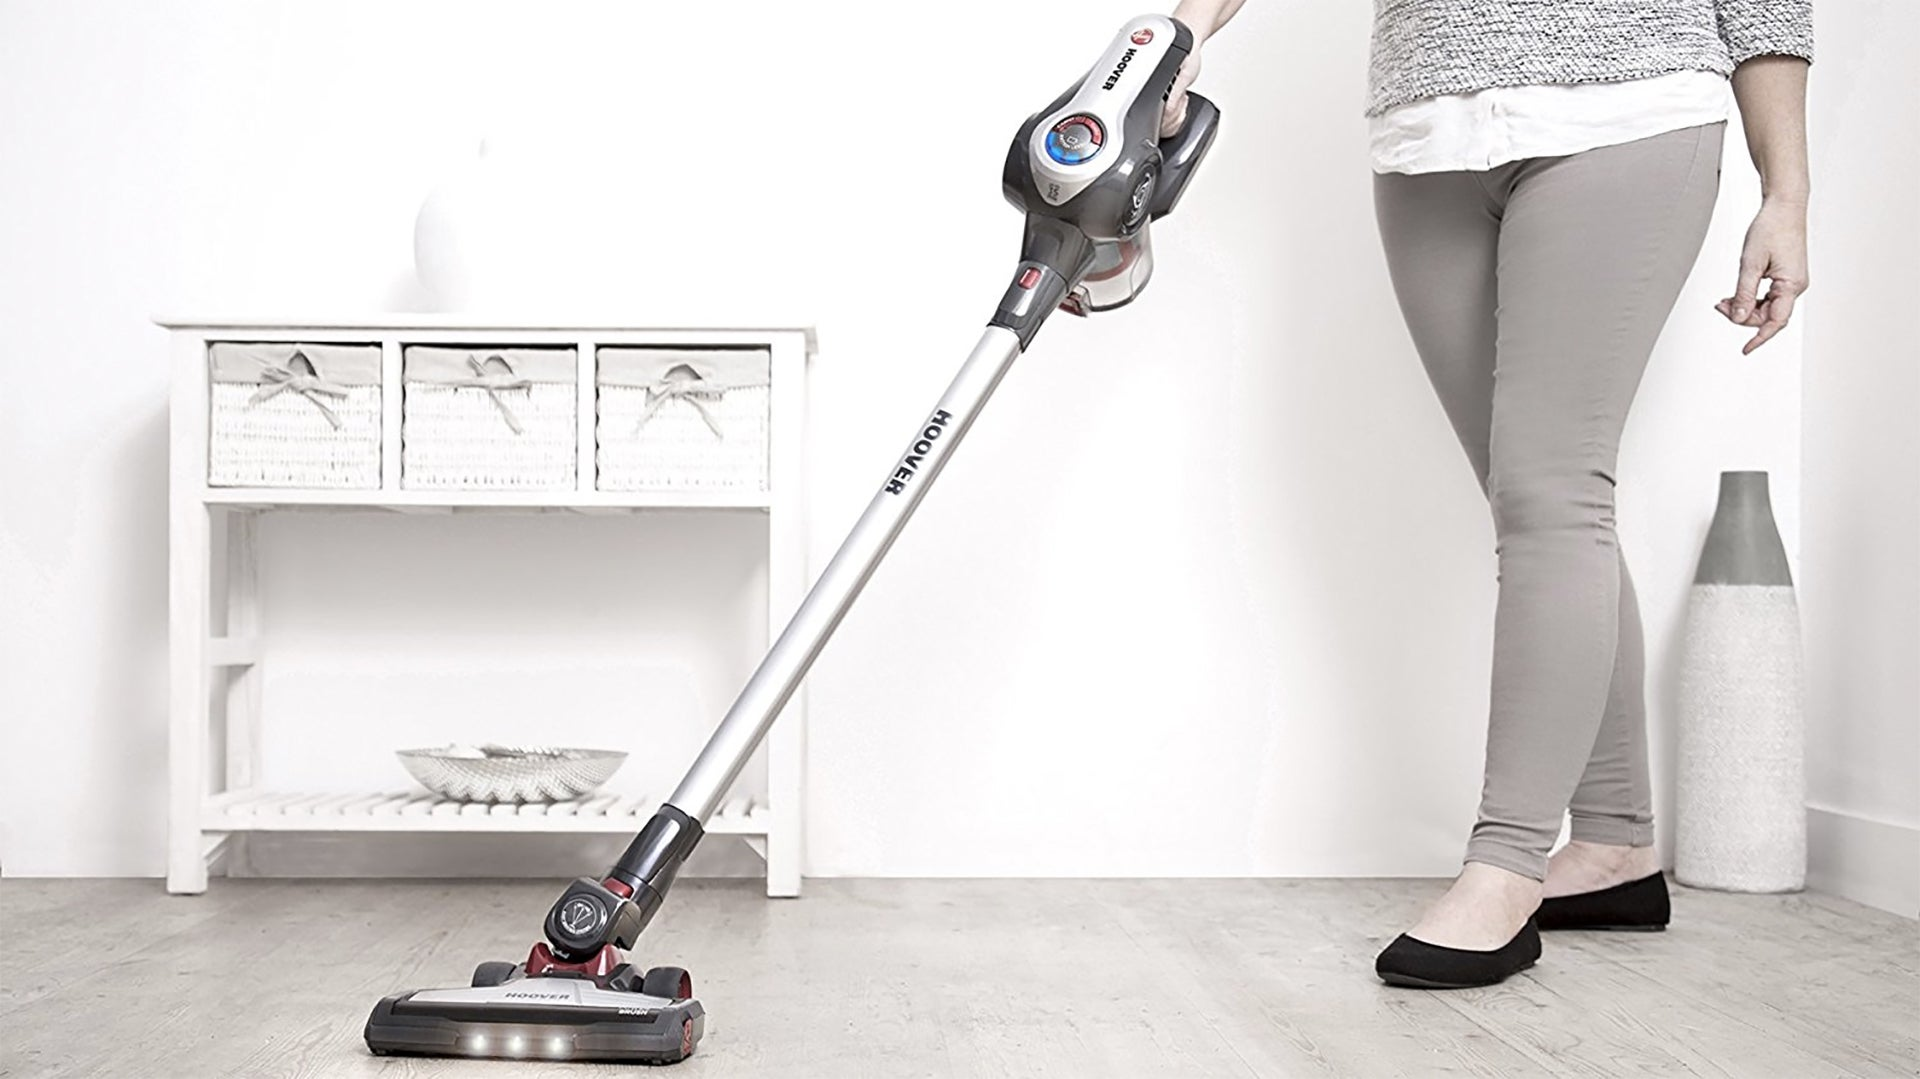 Hoover Discovery Cordless Vacuum Cleaner Price Slashed By